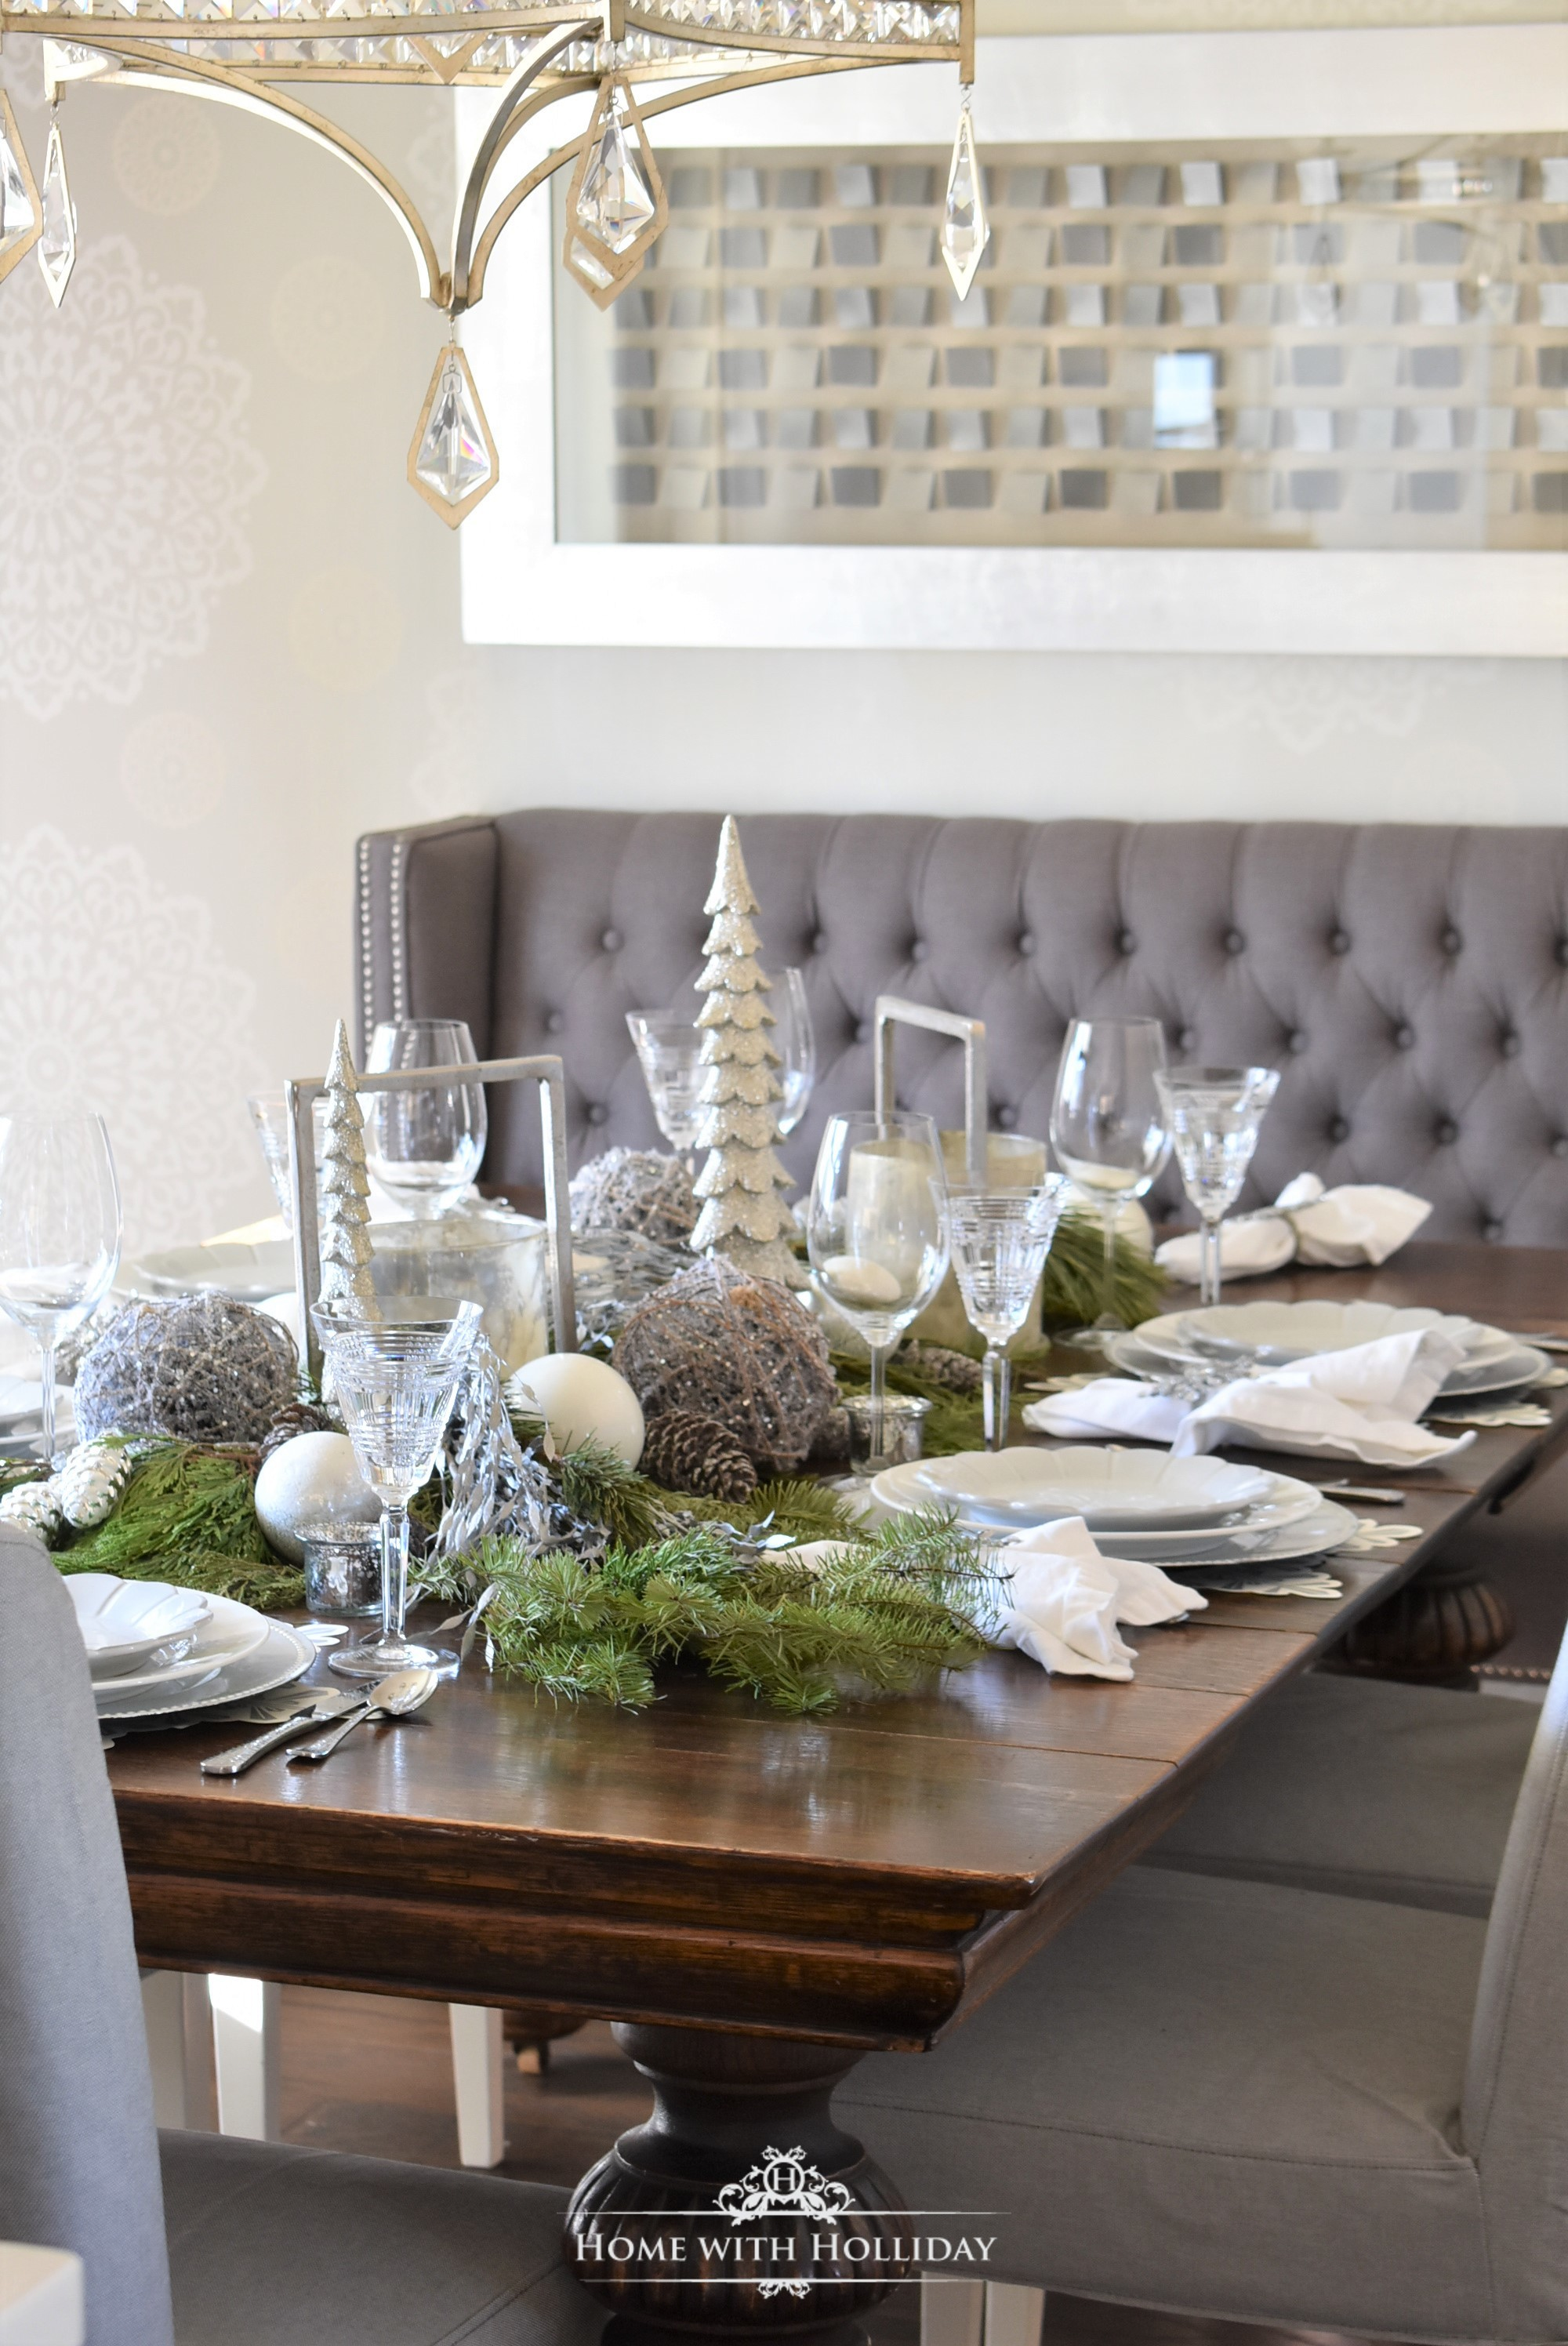 My Christmas Home Tour - Our Centerpiece for my Winter White Snowflake Christmas Centerpiece - Home with Holliday